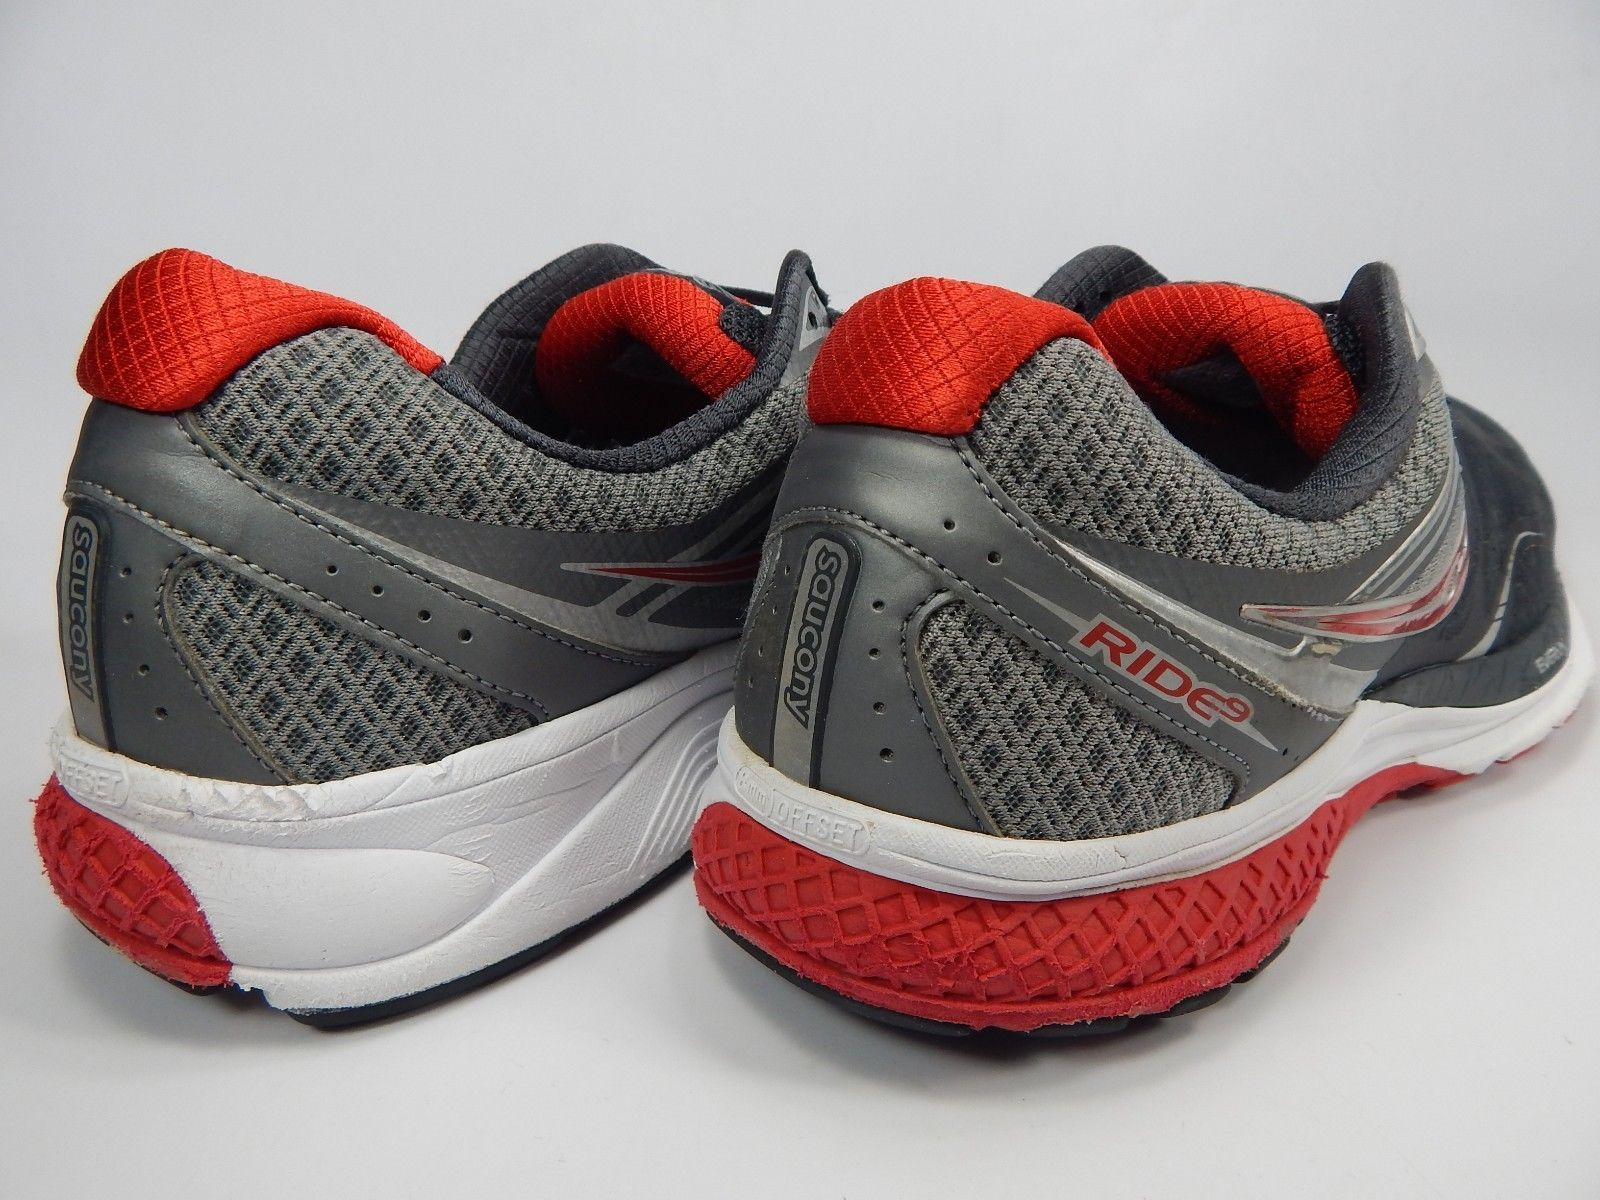 Saucony Ride 9 Size US 14 M (D) EU 49 Men's Running Shoes Gray Red S20318-1